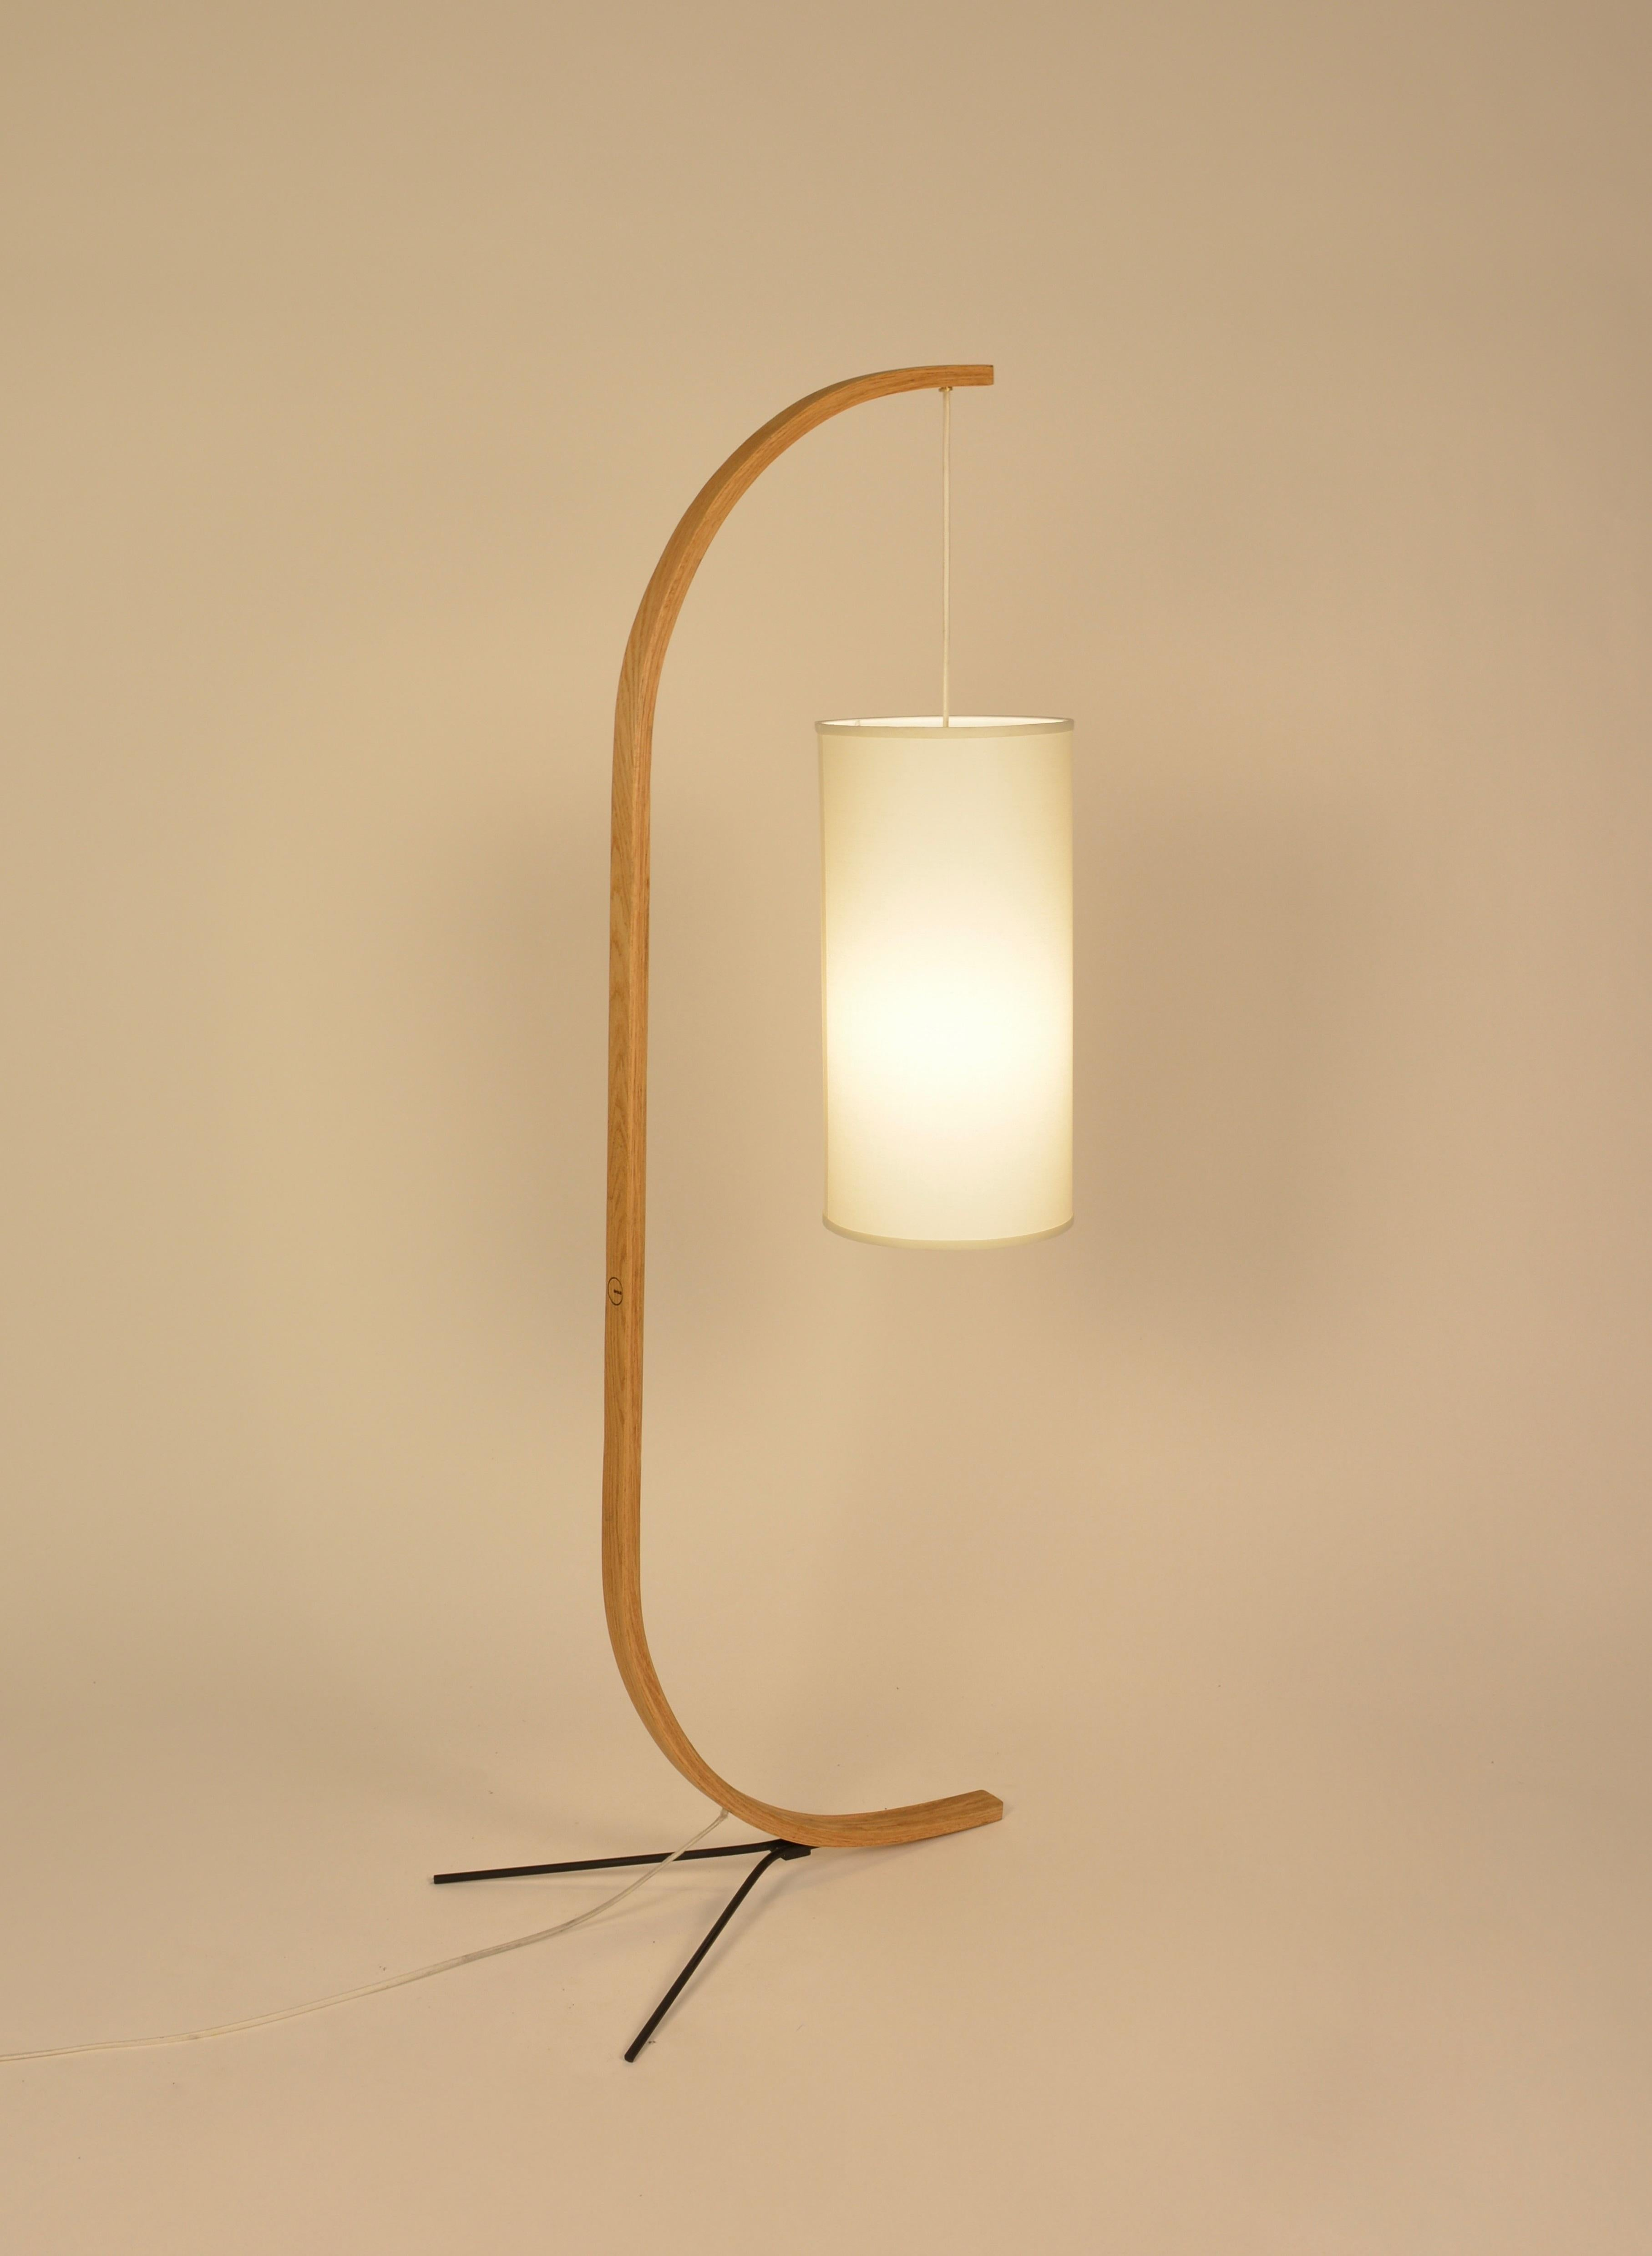 Slender Minimalist Curved Floor Lamp Made With Oak, Steel, And Cloth  Lampshade. Powered